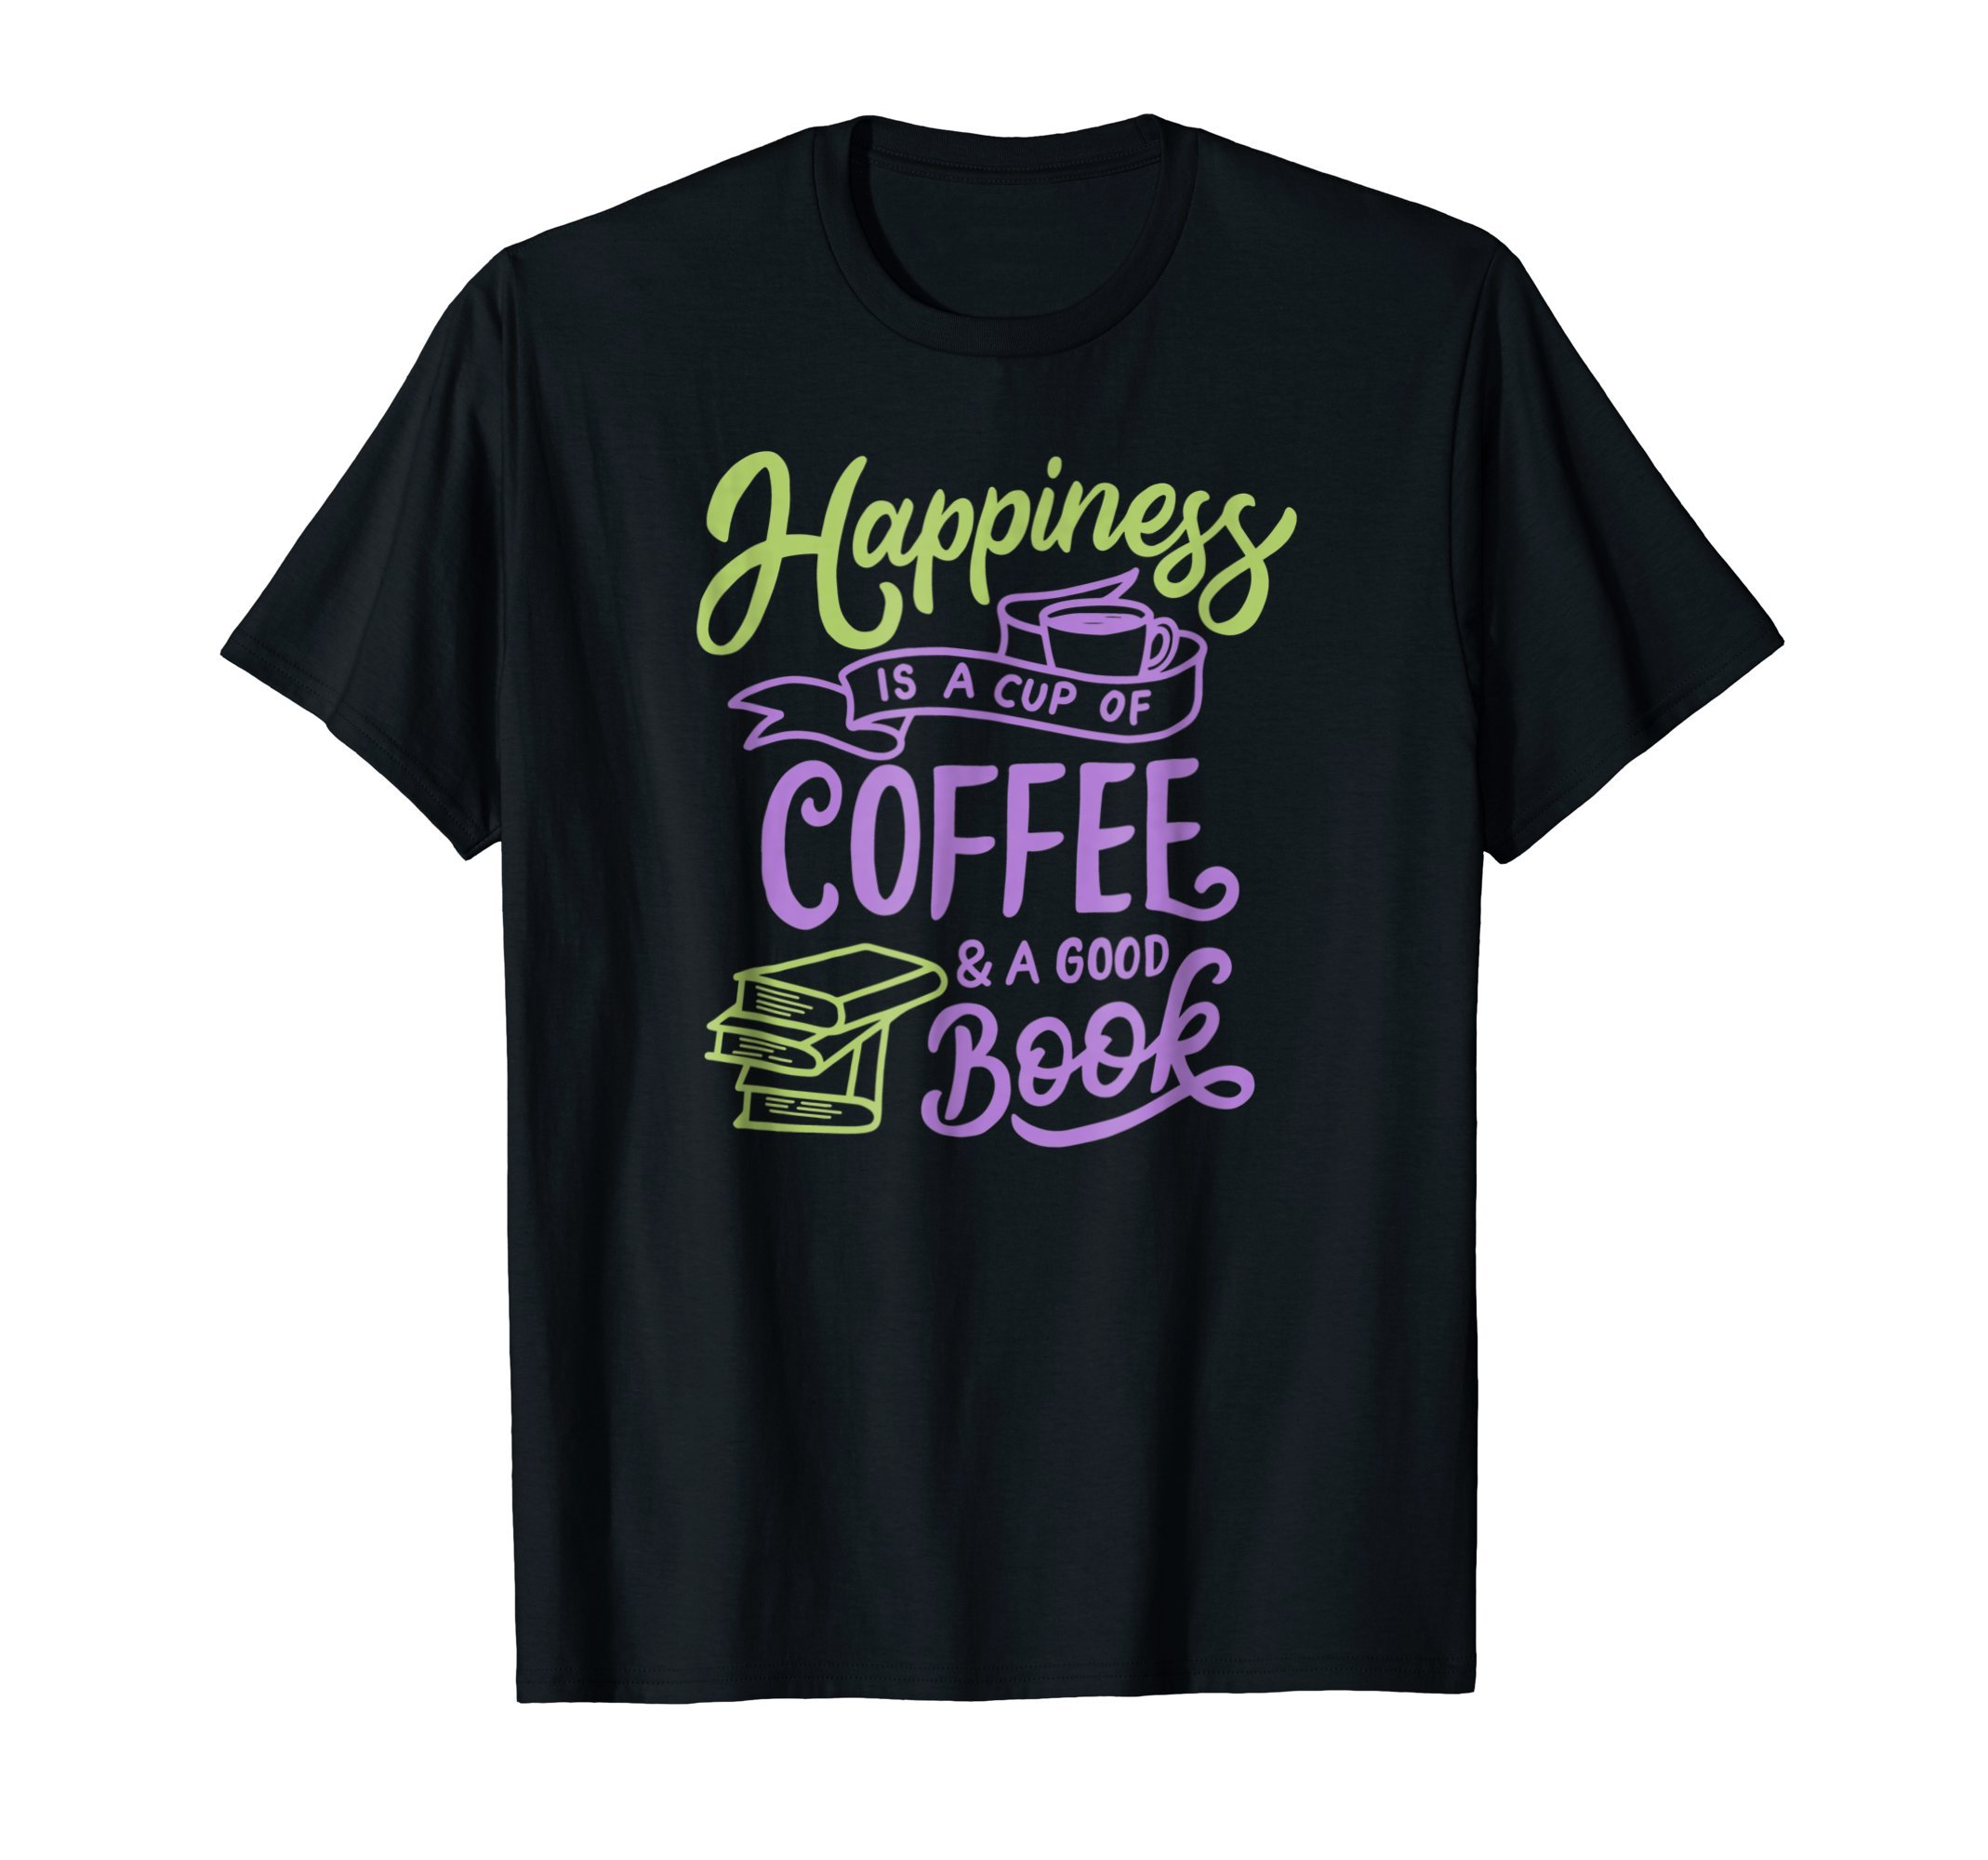 Happiness-is-a-Cup-of-Coffee-a-Good-Book-Humor-T-Shirt-Tee